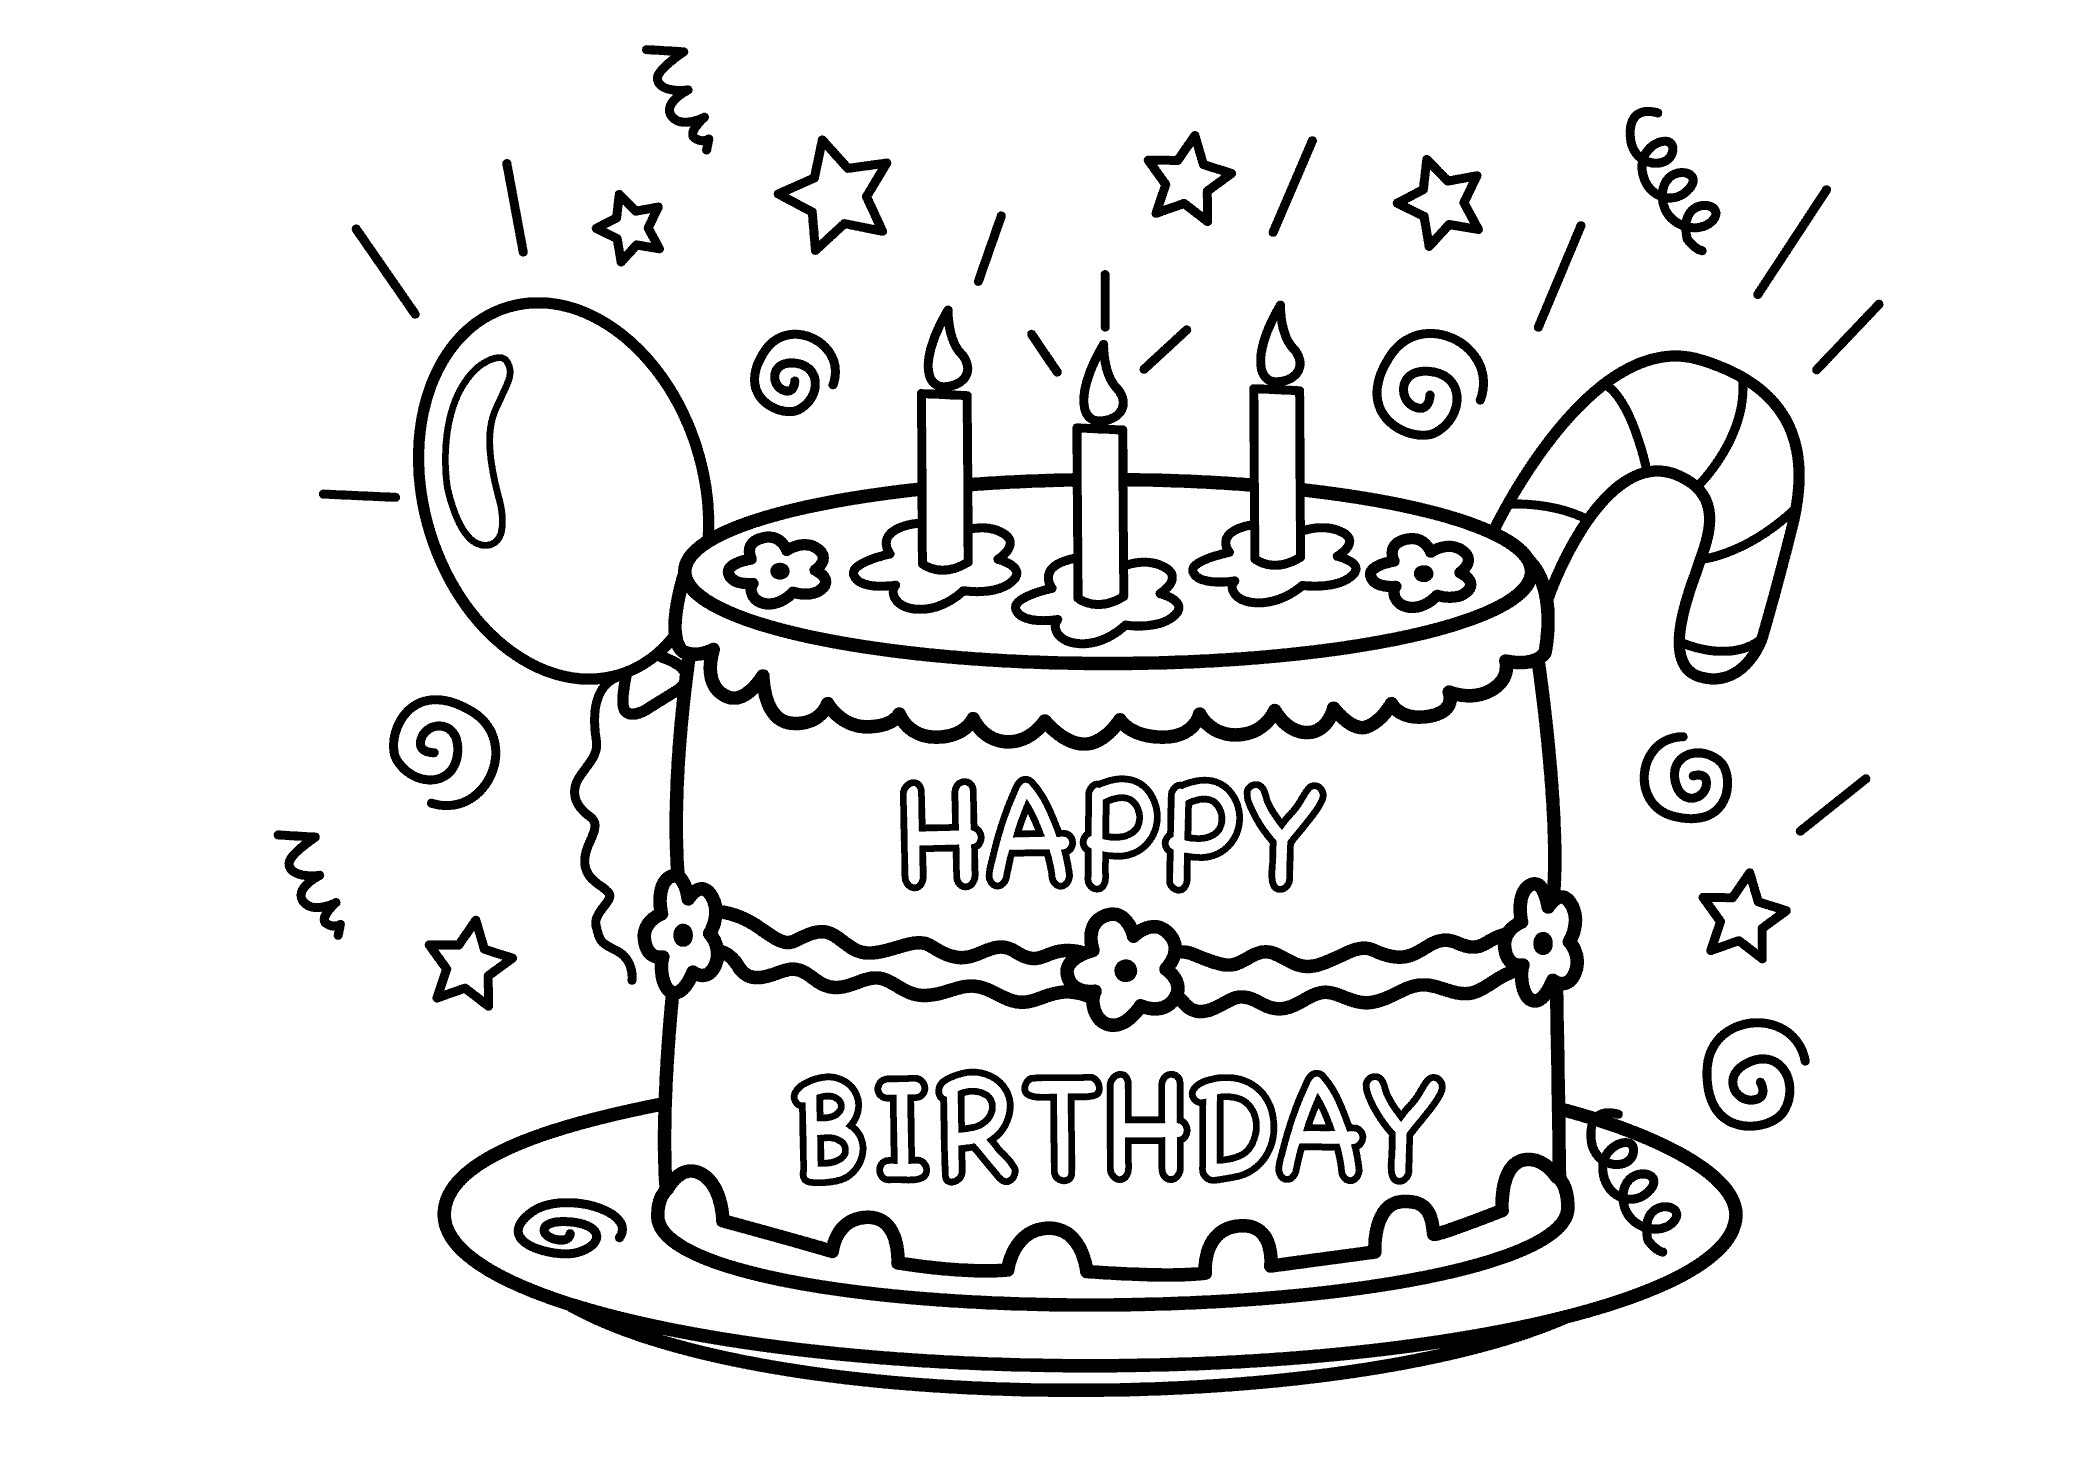 Printable Birthday Coloring Pages Free Printable Birthday Coloring Pages At Getdrawings Free For